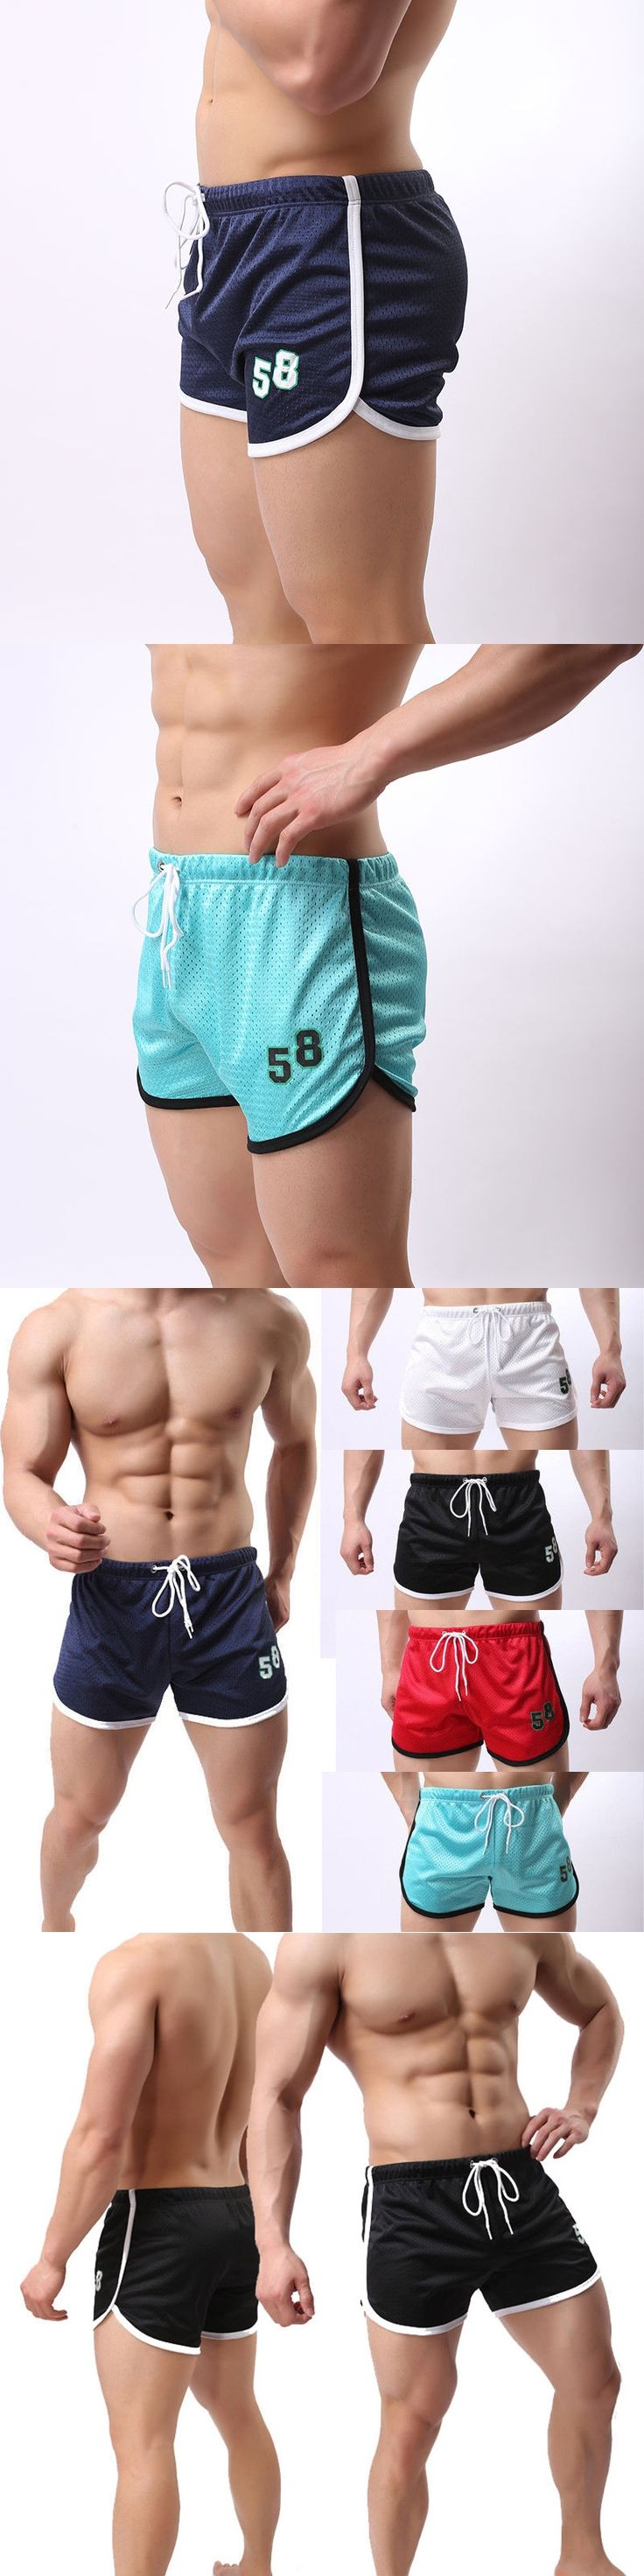 New Men Summer Casual Shorts Trunks Slimming Mens Beach Short Pants Male Fitness Shorts For Workout